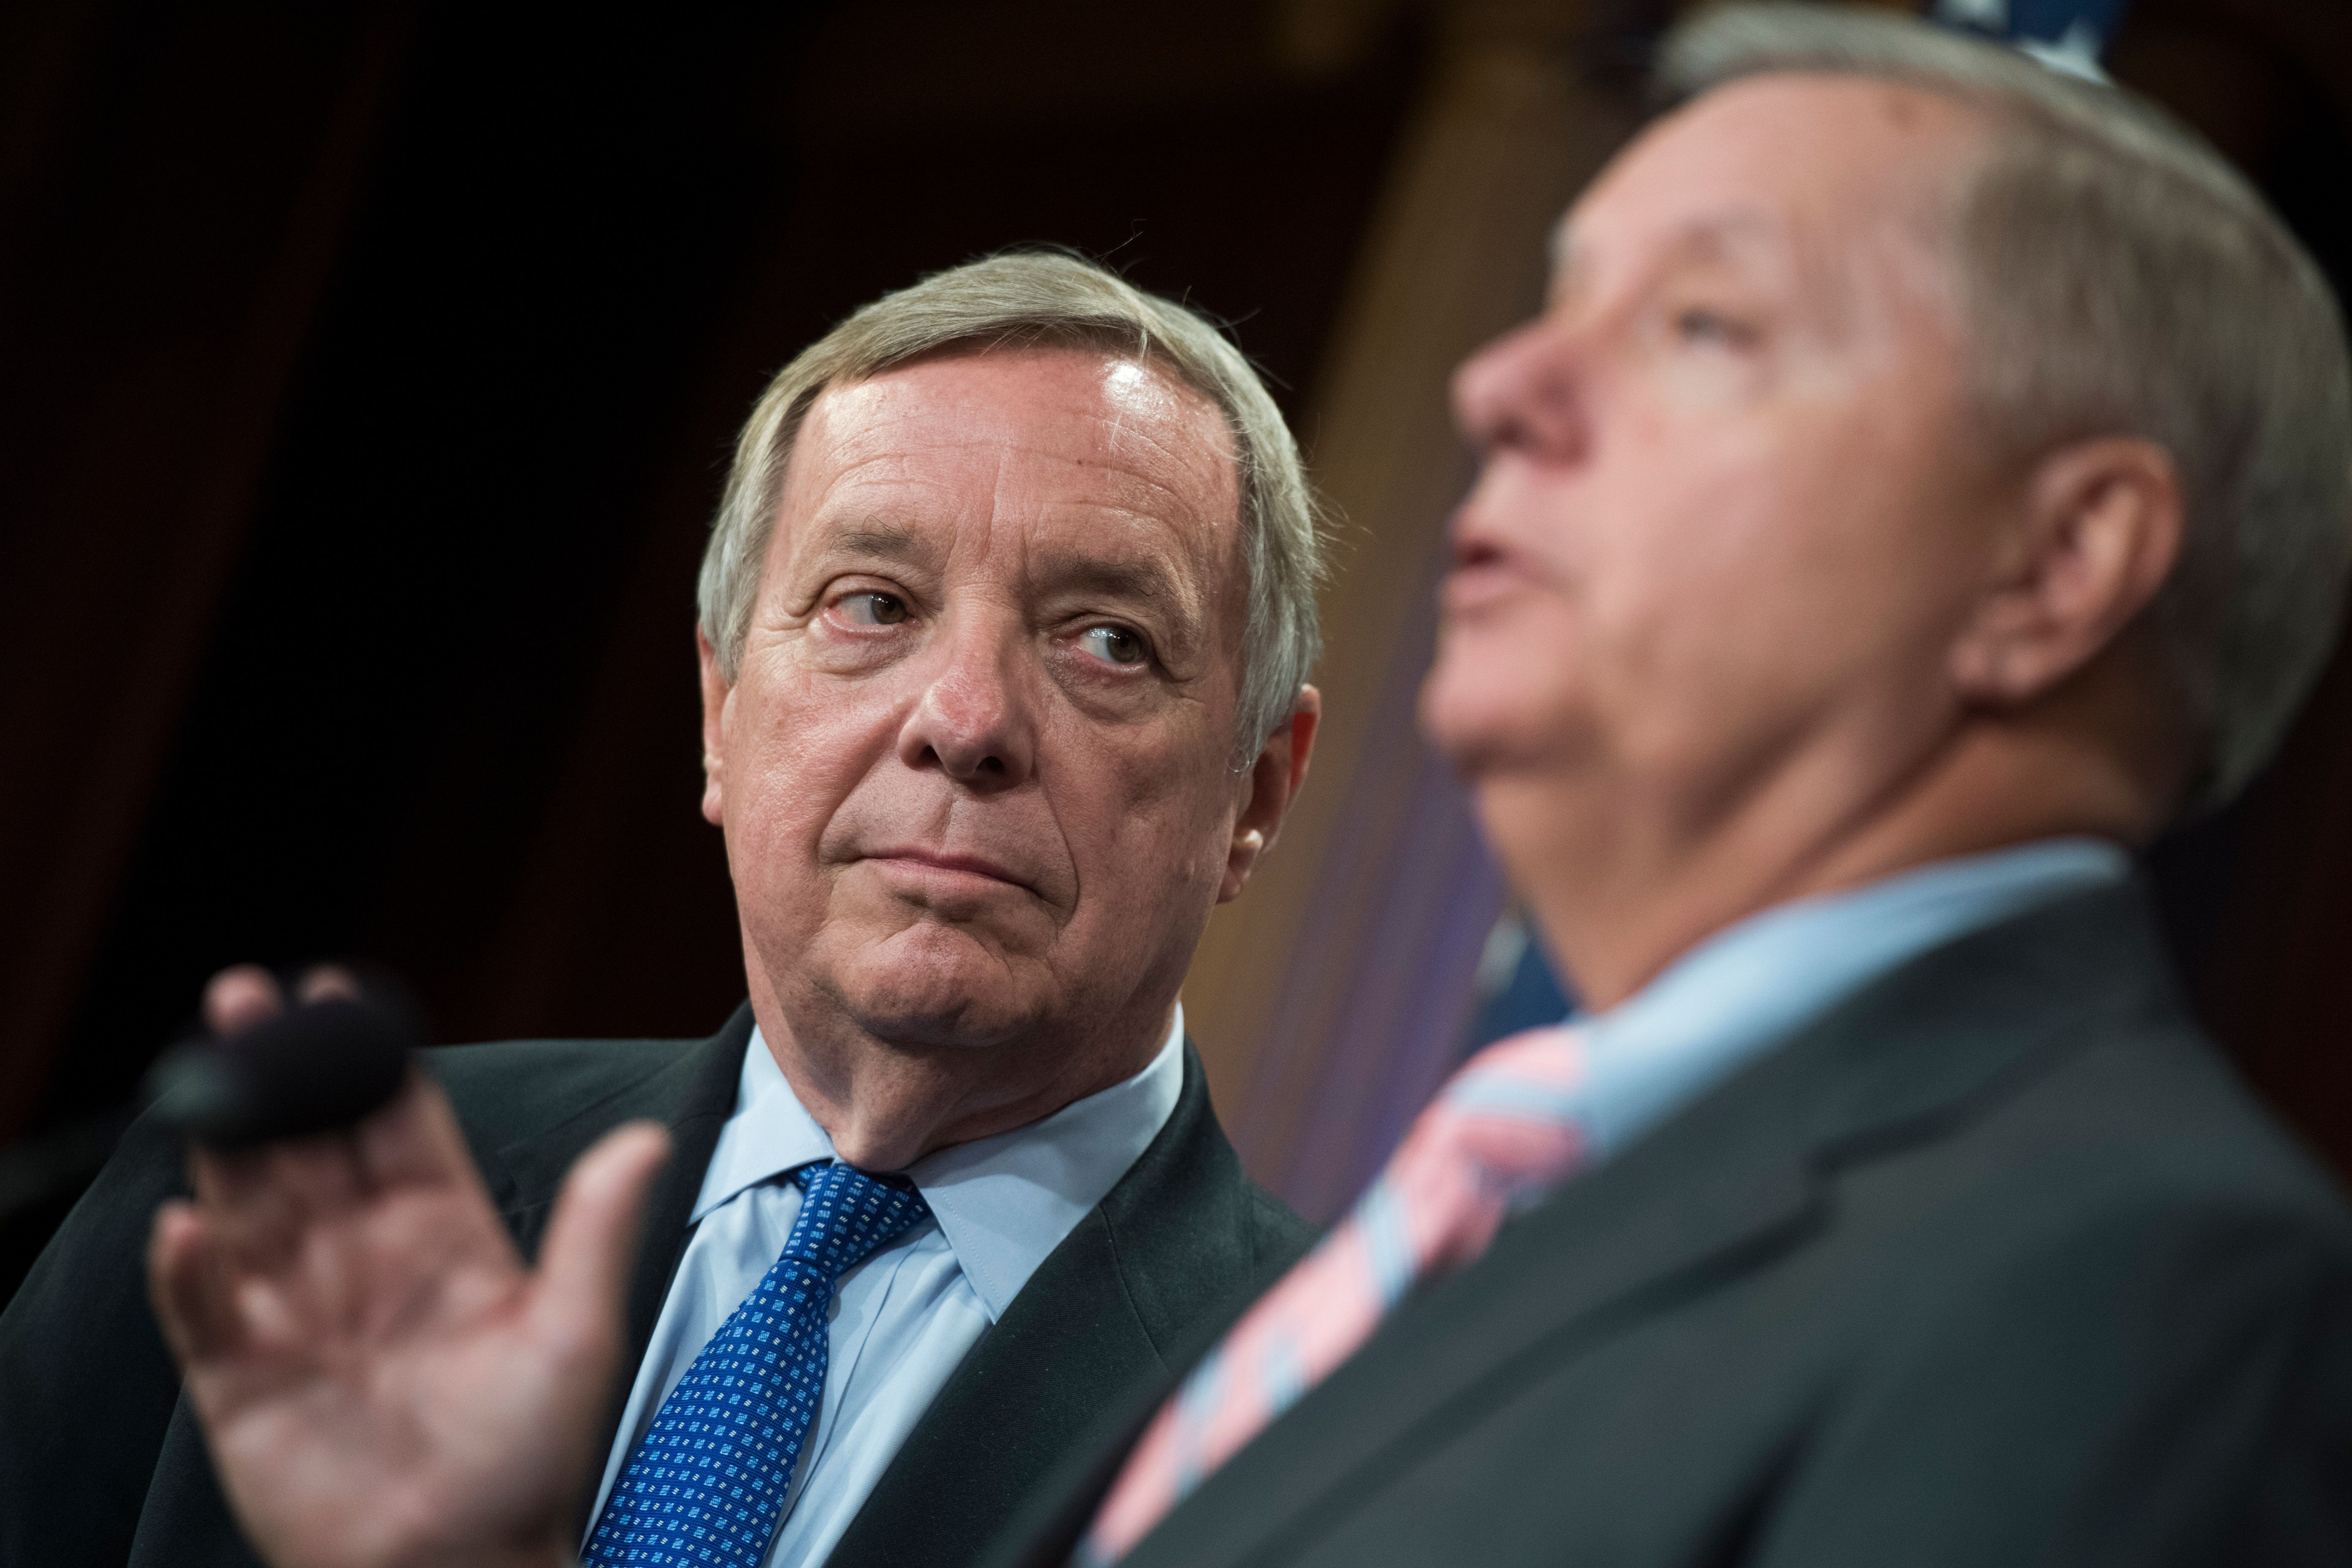 Sens. Dick Durbin and Lindsey Graham are part of a bipartisan group working to protect undocumented immigrants who came to th